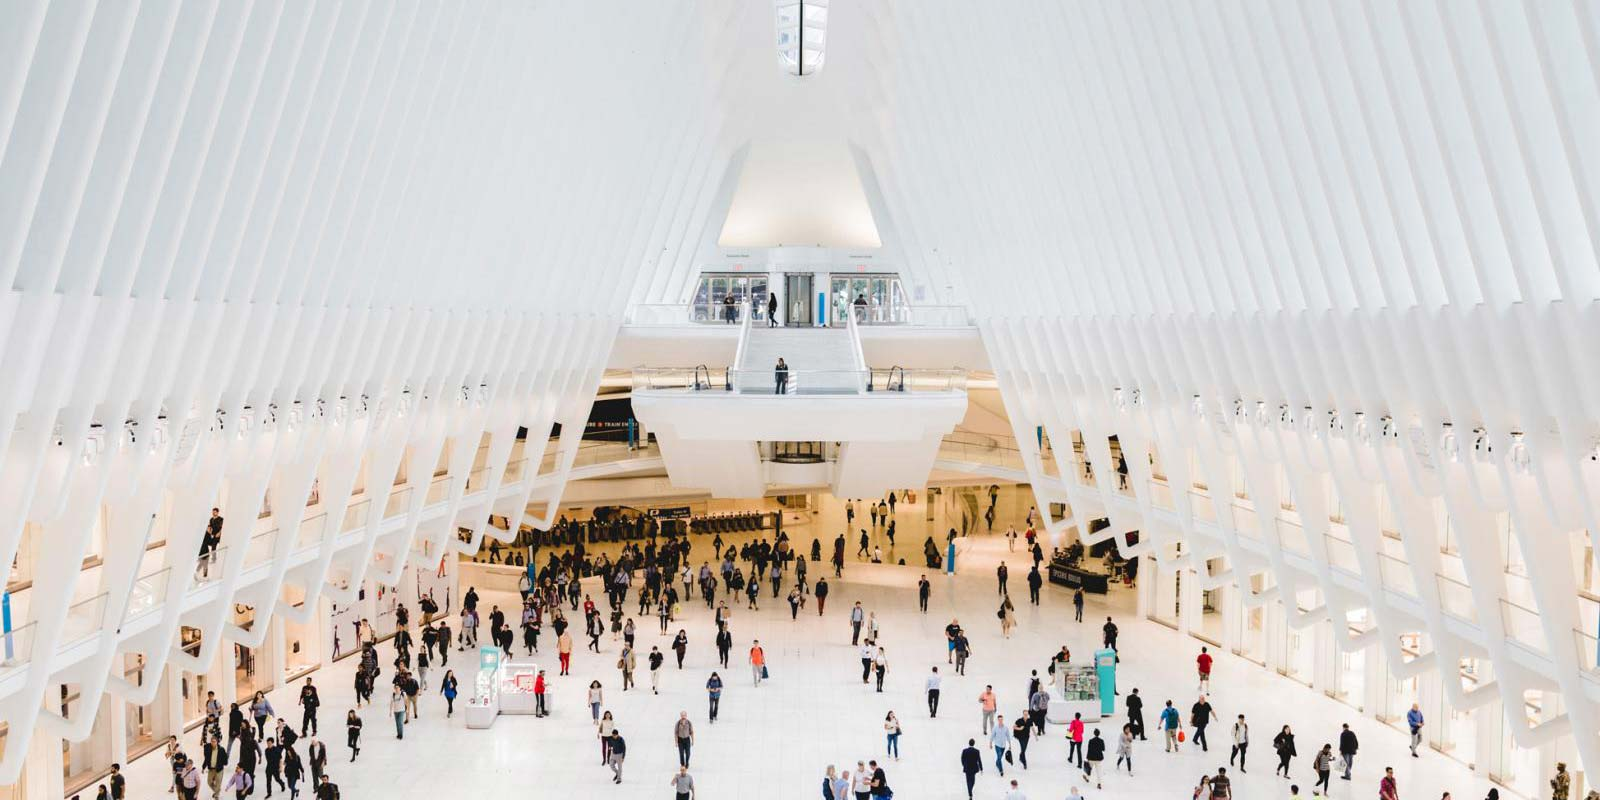 Things to do on a rainy day in NYC: The Oculus